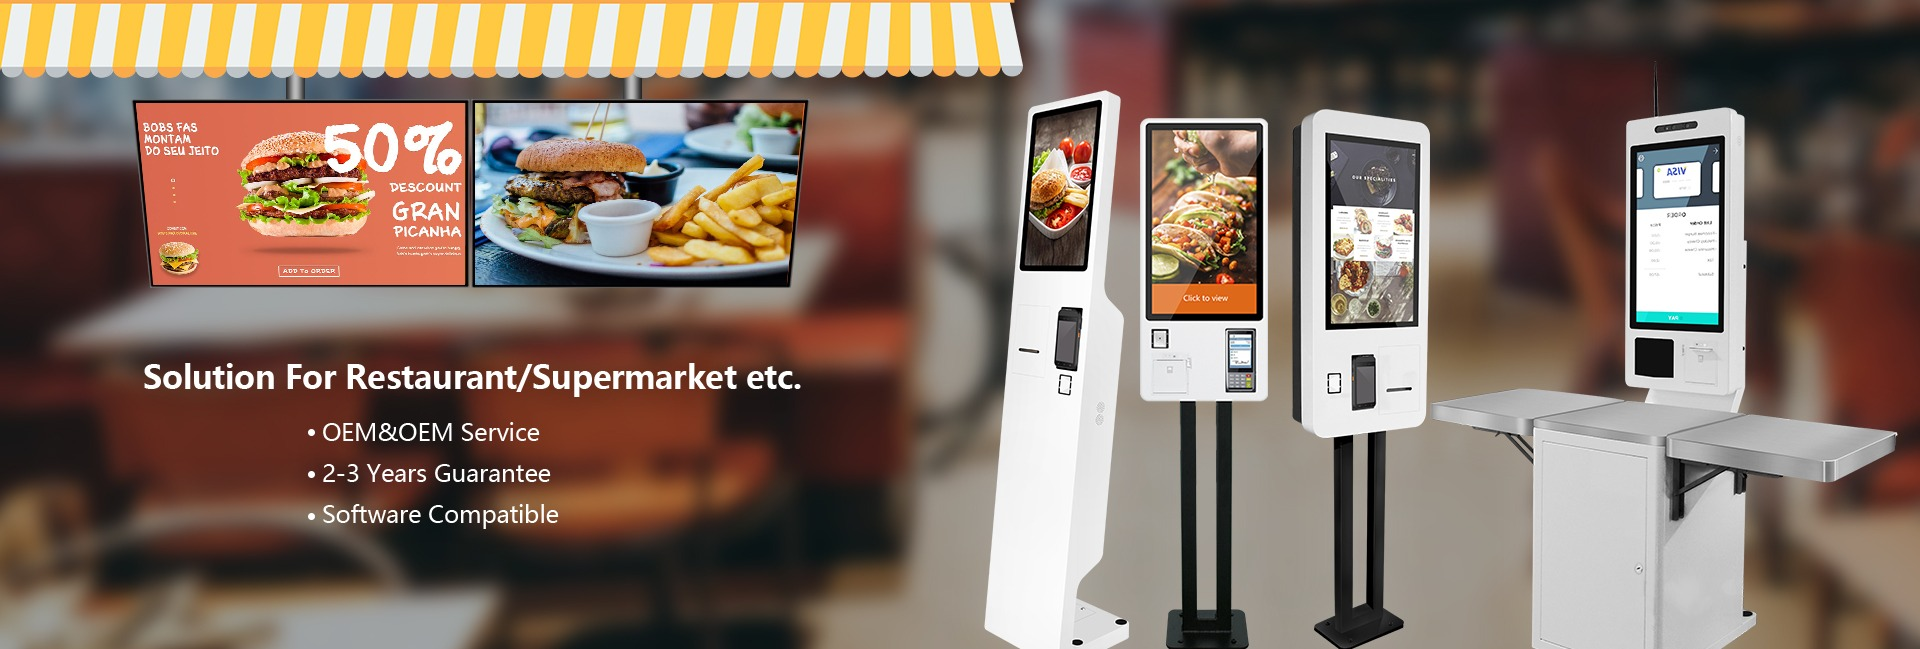 epos machine Digital Screens and self order kiosk